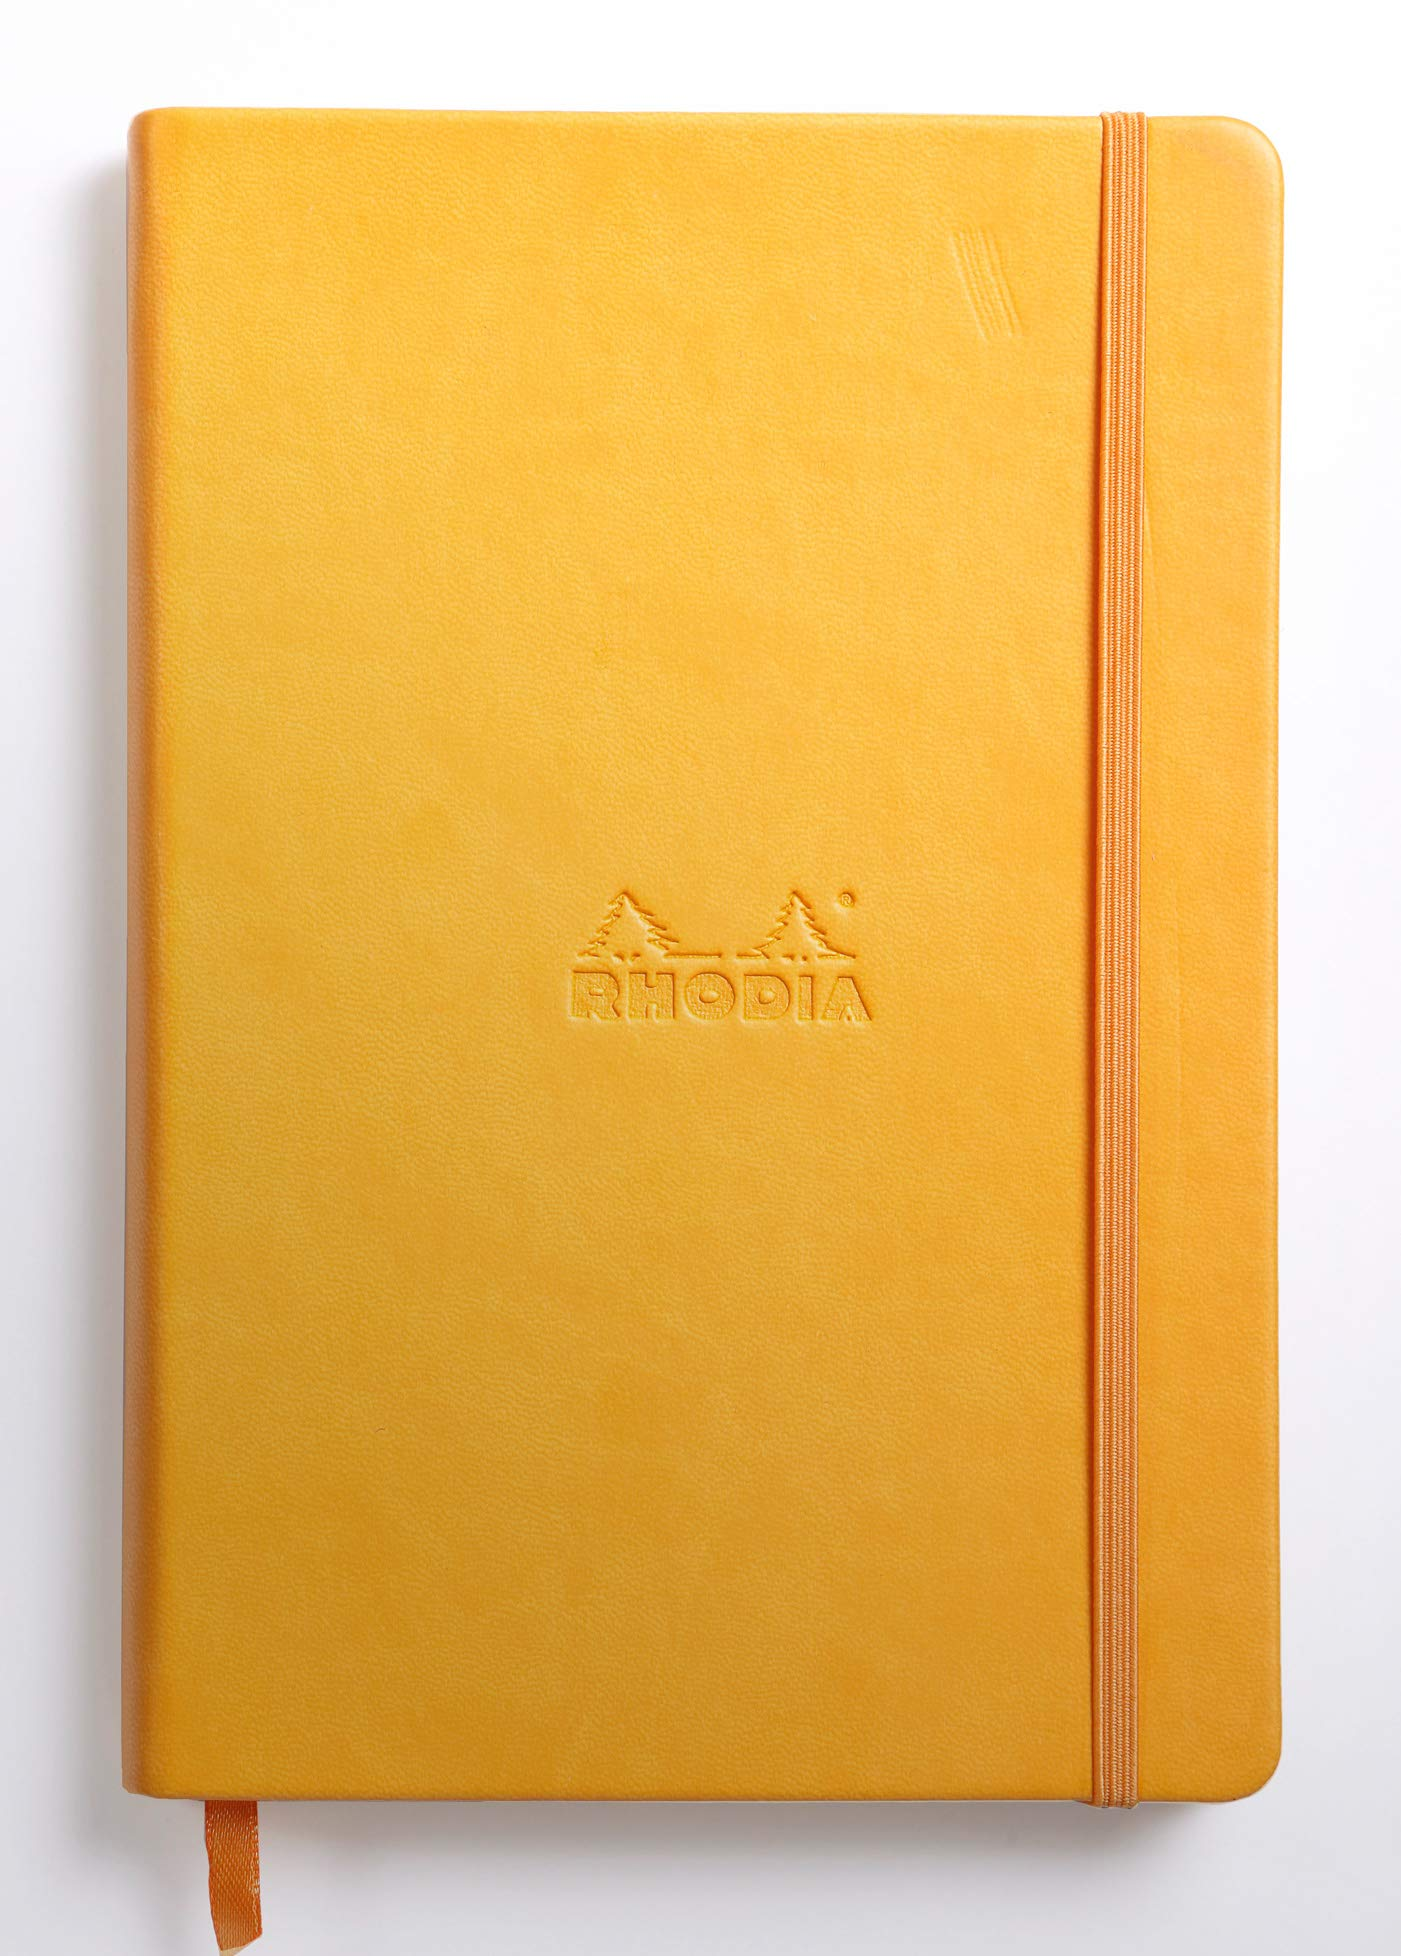 Rhodia Rhodiarama Webnotebook - Blank 96 sheets - 5 1/2 x 8 1/4 - Yellow Cover by Rhodia